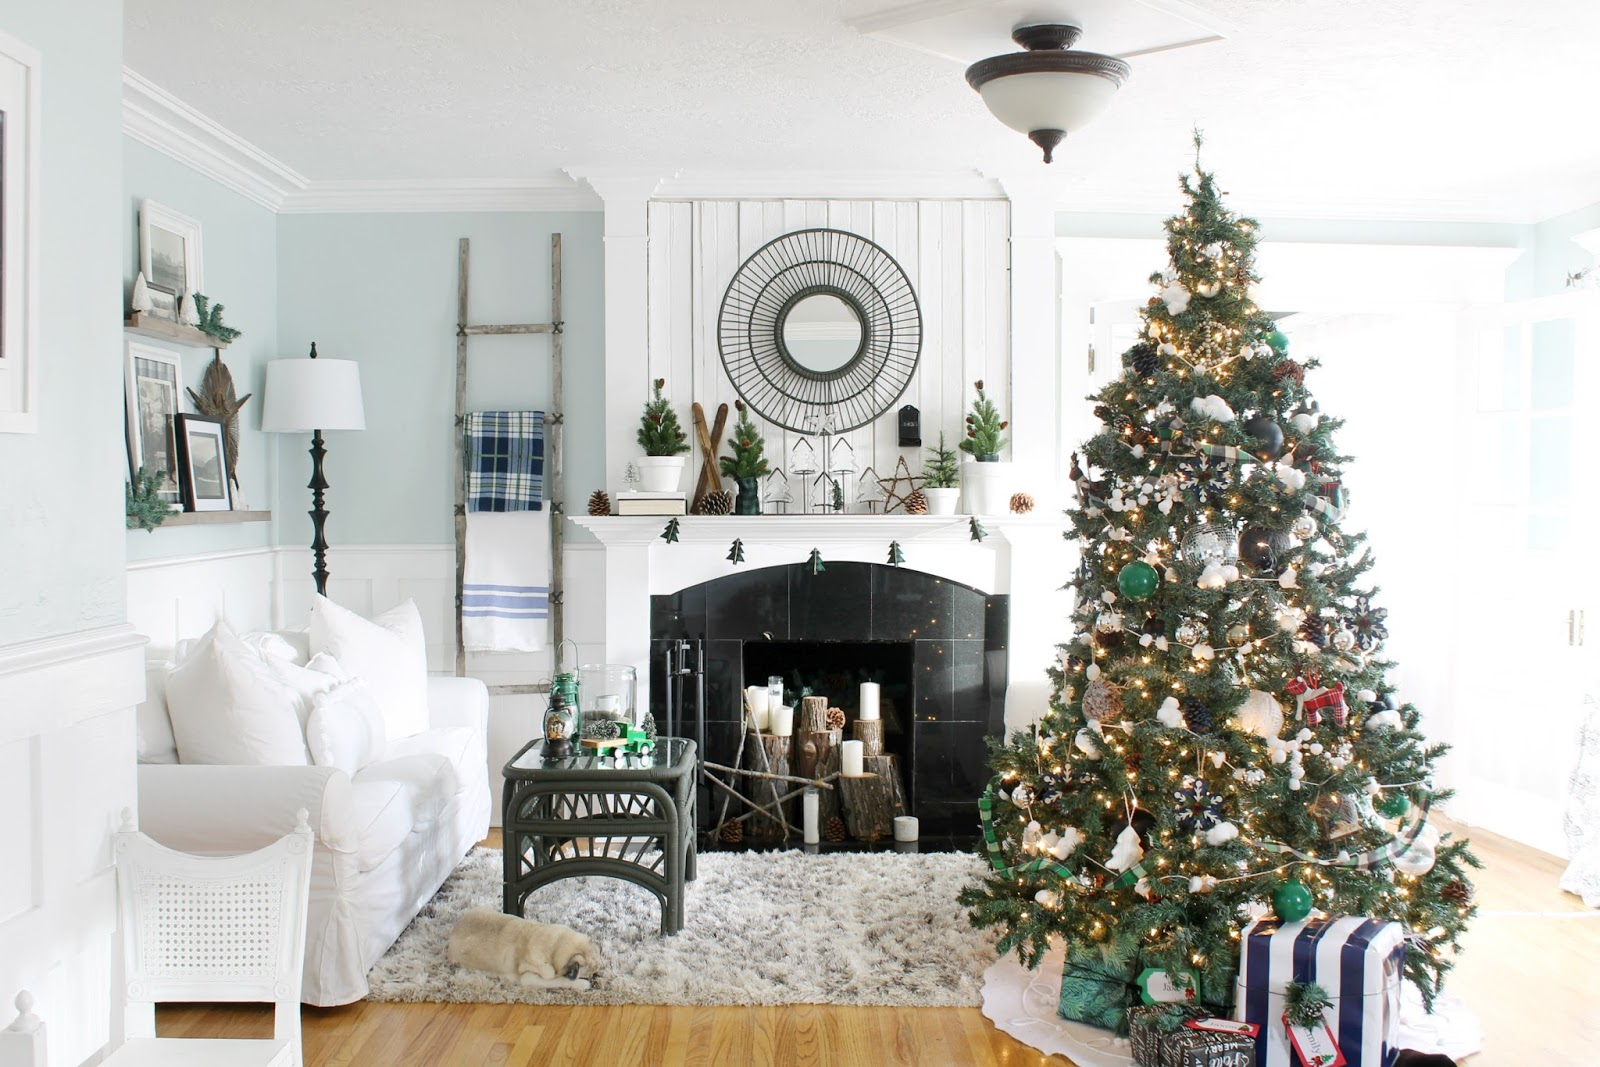 A Cottage Christmas Home Tour 2016 - The Wicker House